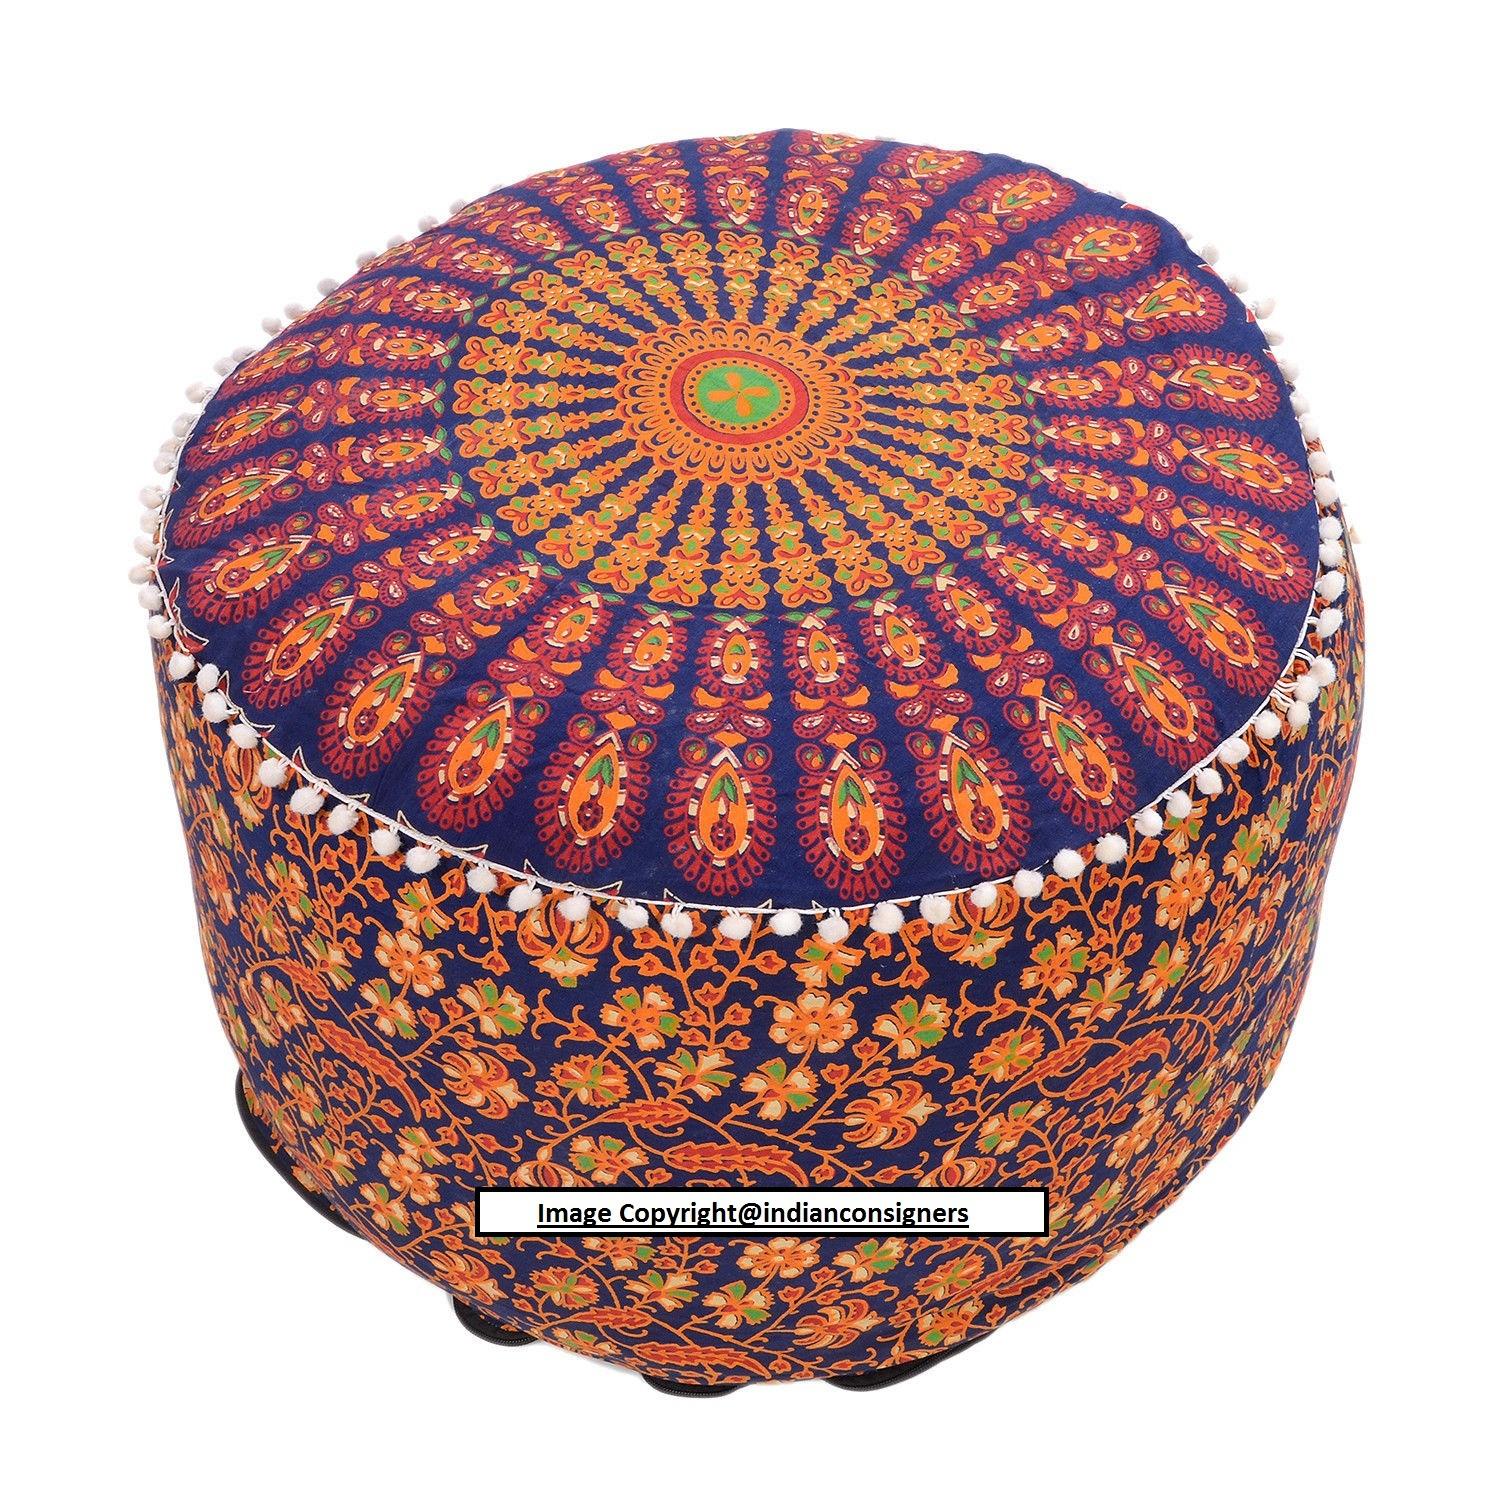 Picture of: Ombre Mandala 22 Inch Ottoman Round Seat Cover Chair Home Decor Handmade Cotton Indian Consigners